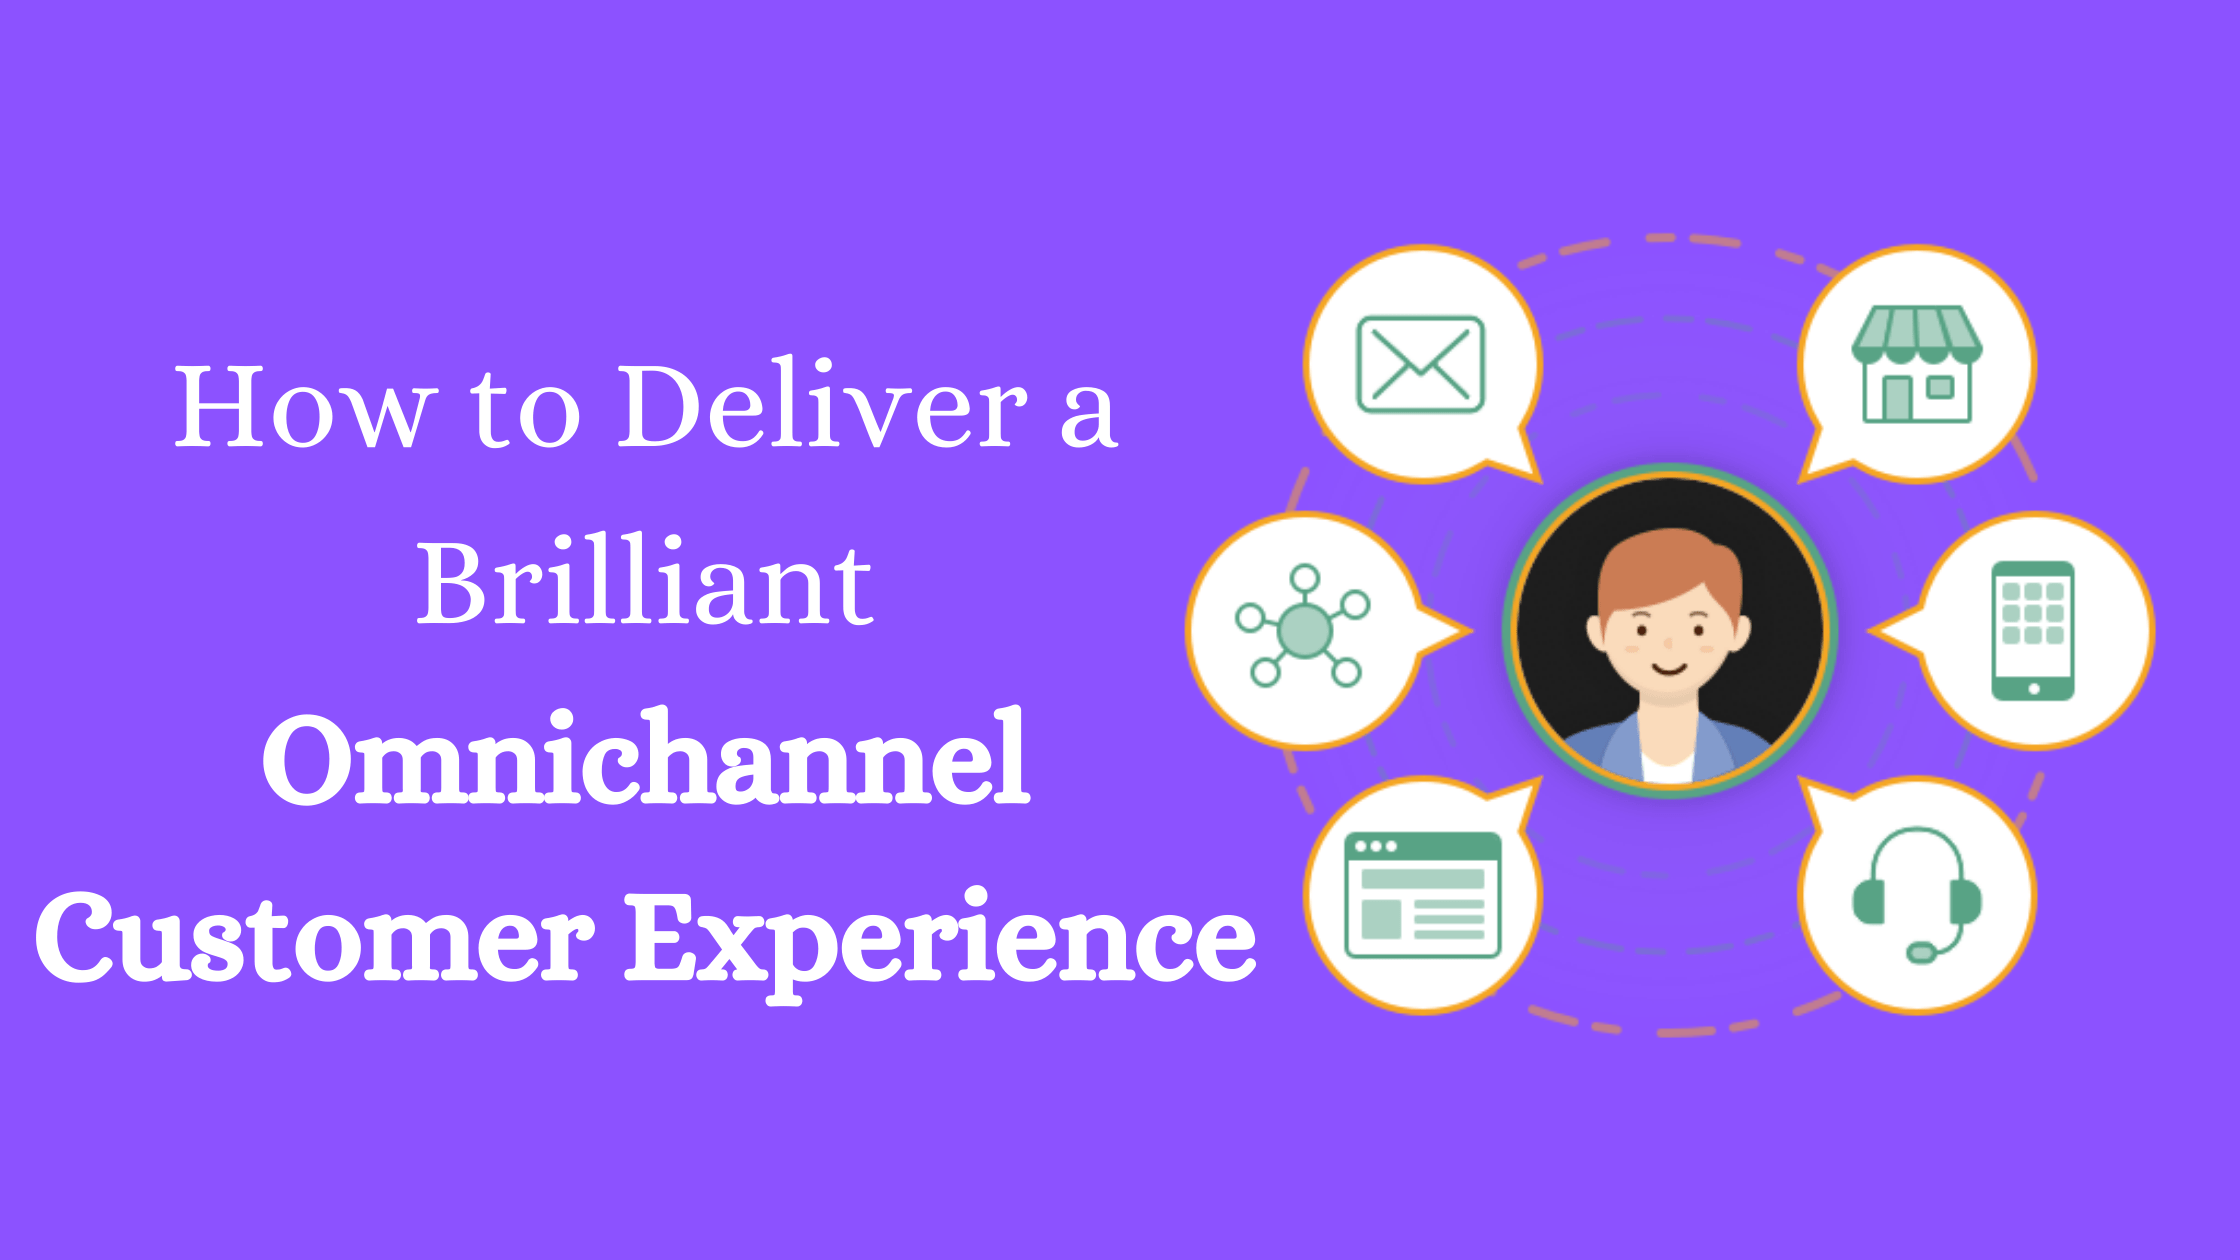 How to Deliver a Brilliant Omnichannel Customer Experience